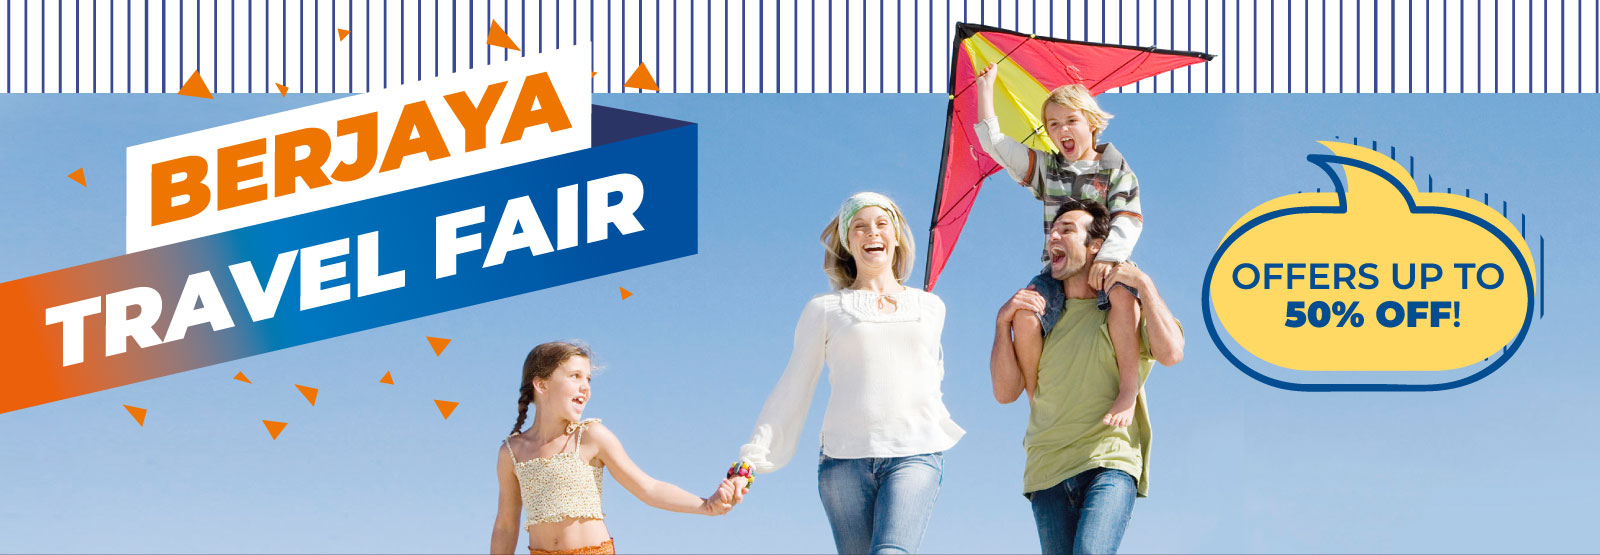 Berjaya Travel Fair Up to 50% off